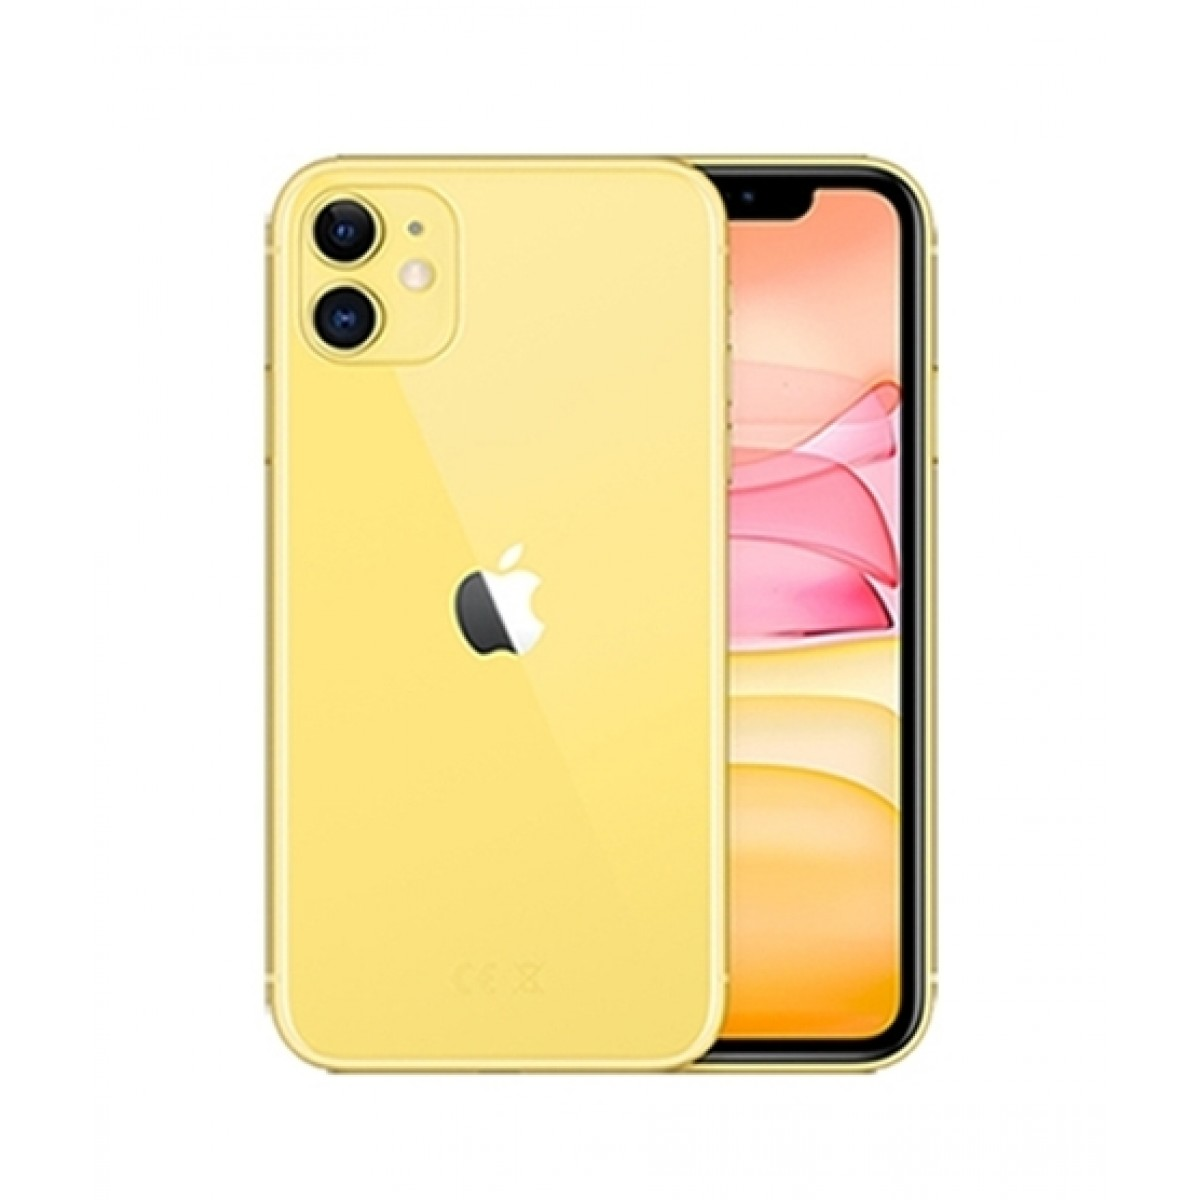 Apple iPhone 11 128GB Dual Sim Yellow - Non PTA Compliant